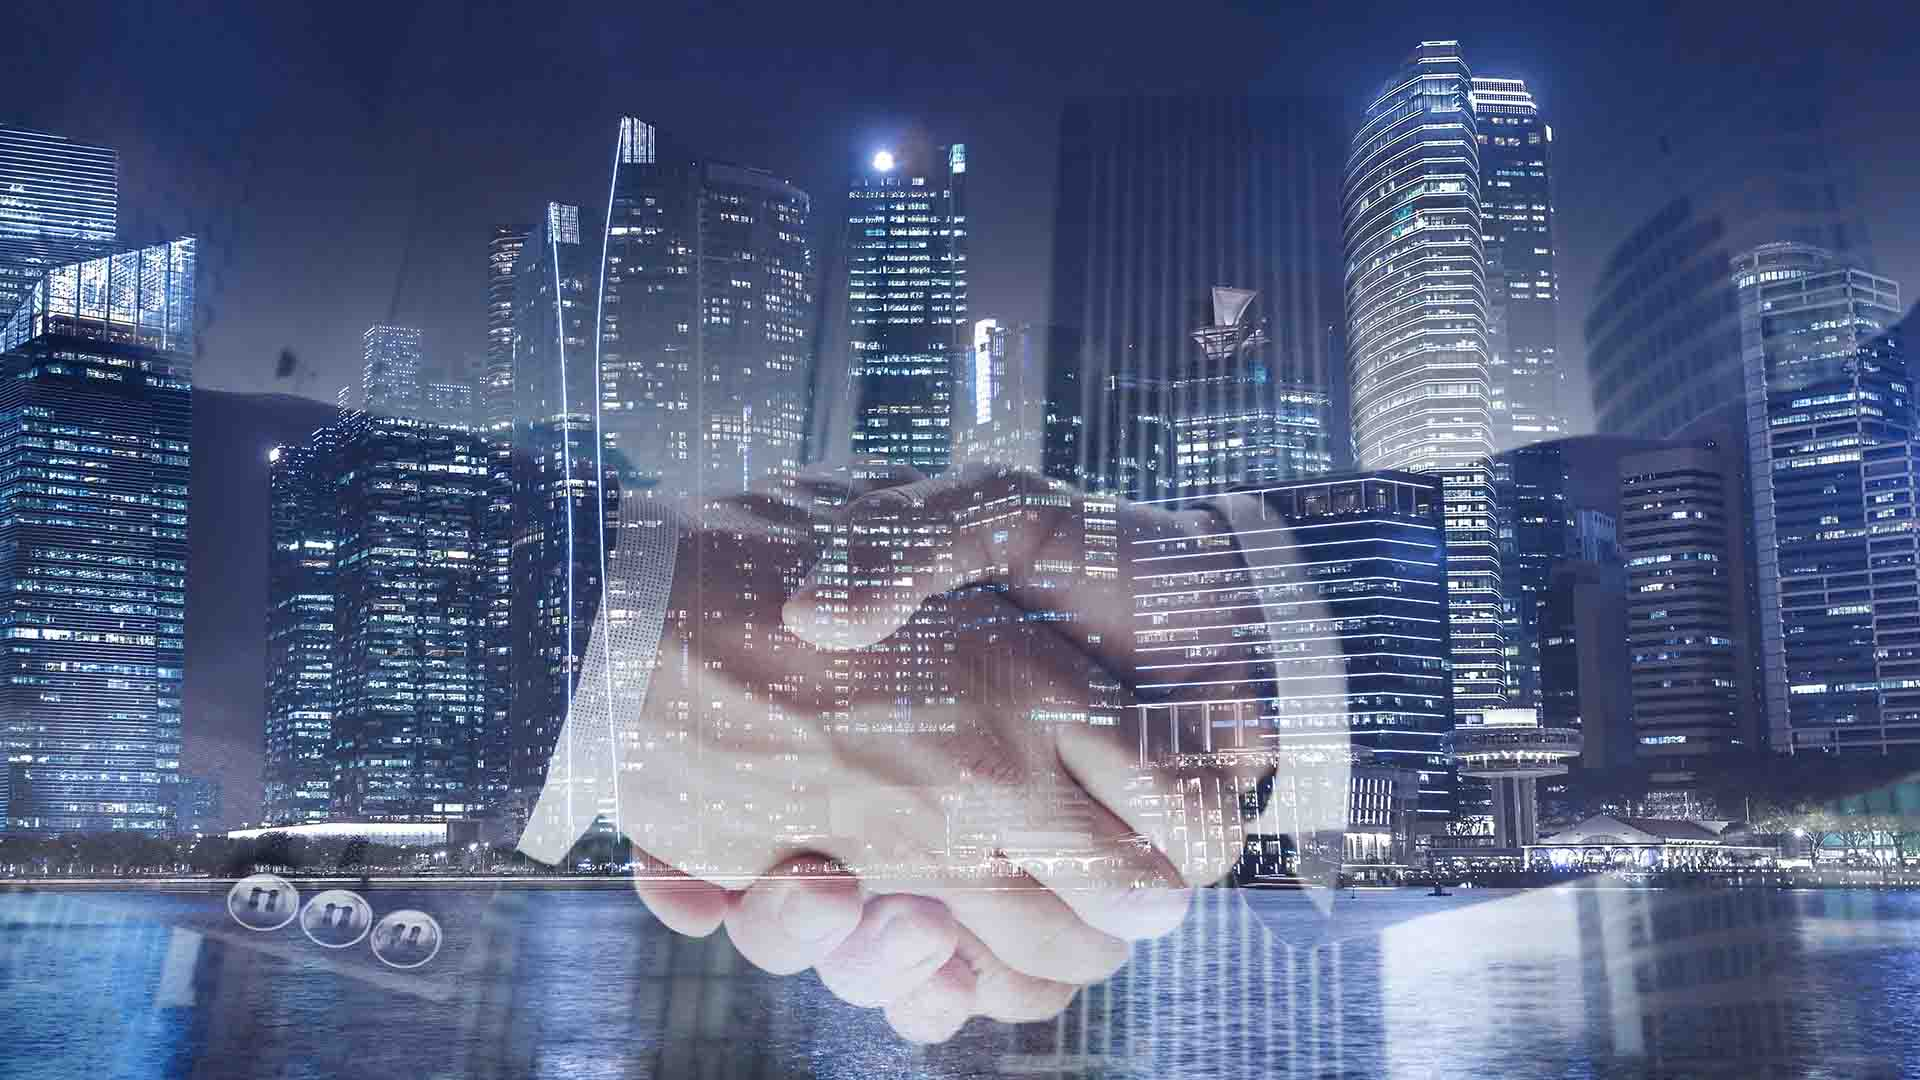 L&T Realty and Nirmal Lifestyle Sign a Joint Development Deal for 3 Million sq ft